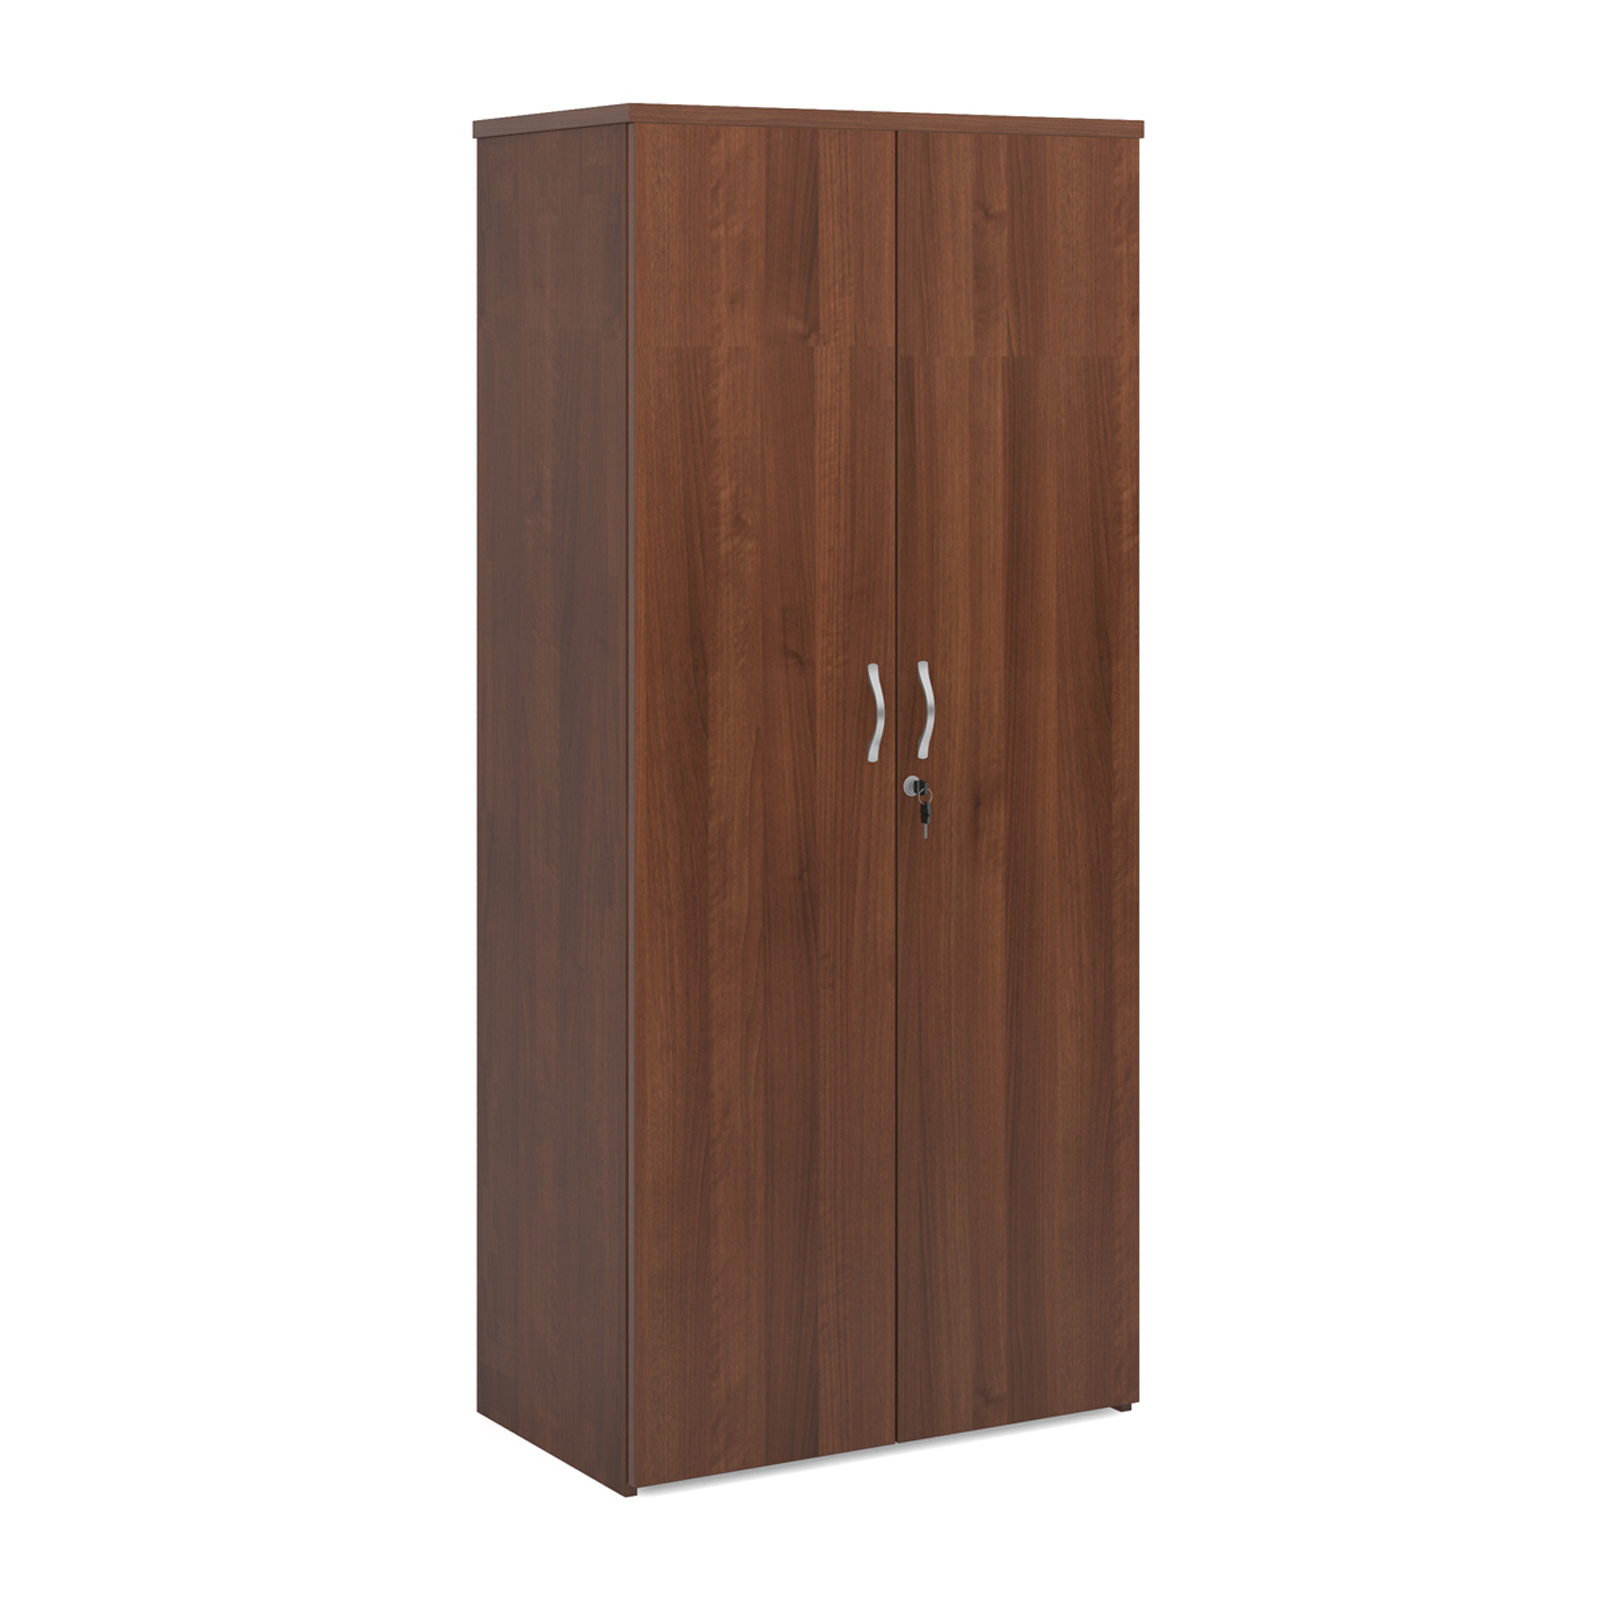 Universal double door cupboard 1790mm high with 4 shelves - walnut